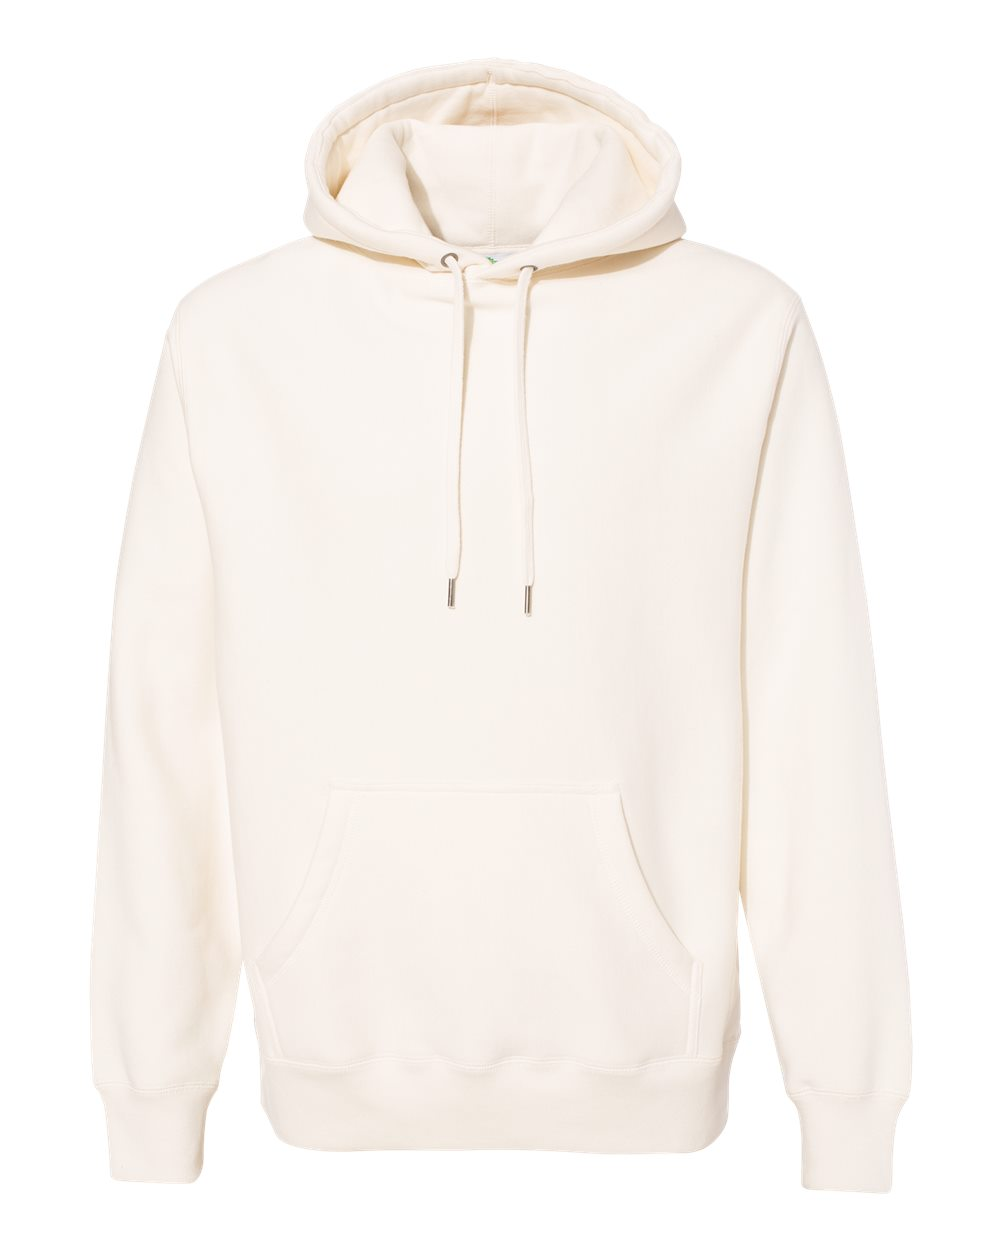 Independent-Trading-Co-Mens-Premium-Heavyweight-Cross-Grain-Hoodie-IND5000P thumbnail 12